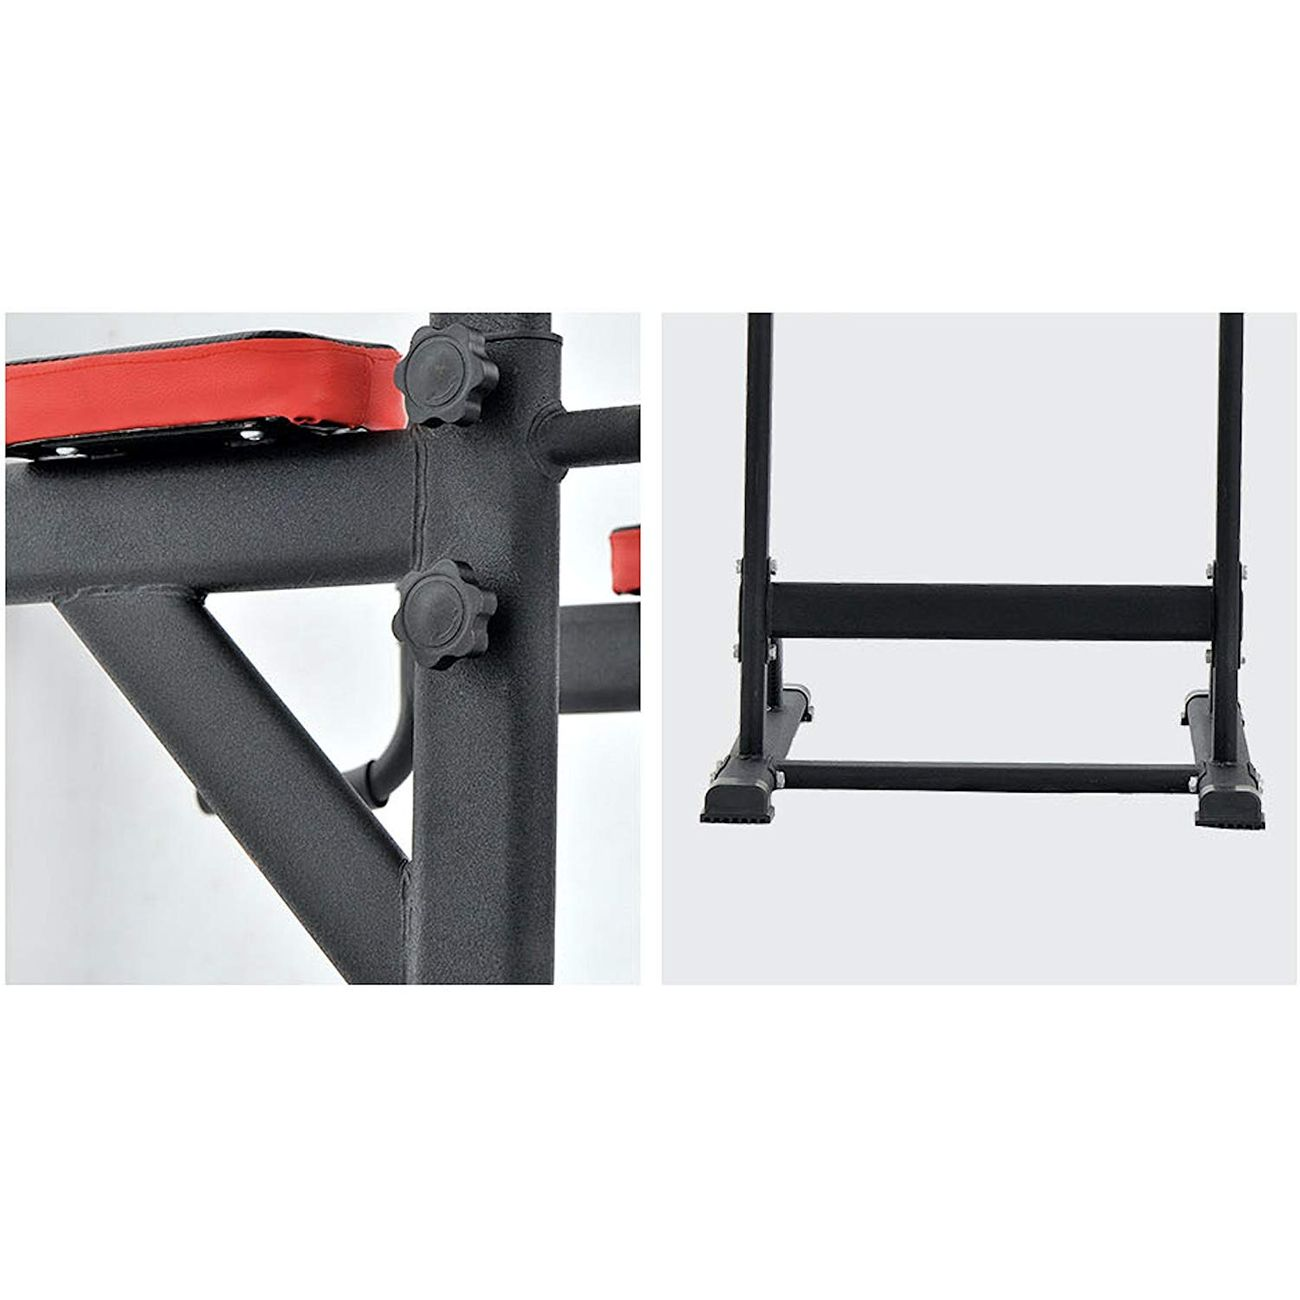 Musculation  PULL UP FITNESS Pull Up Fitness - Barre de Traction avec Chaise Romaine, Noir/Rouge